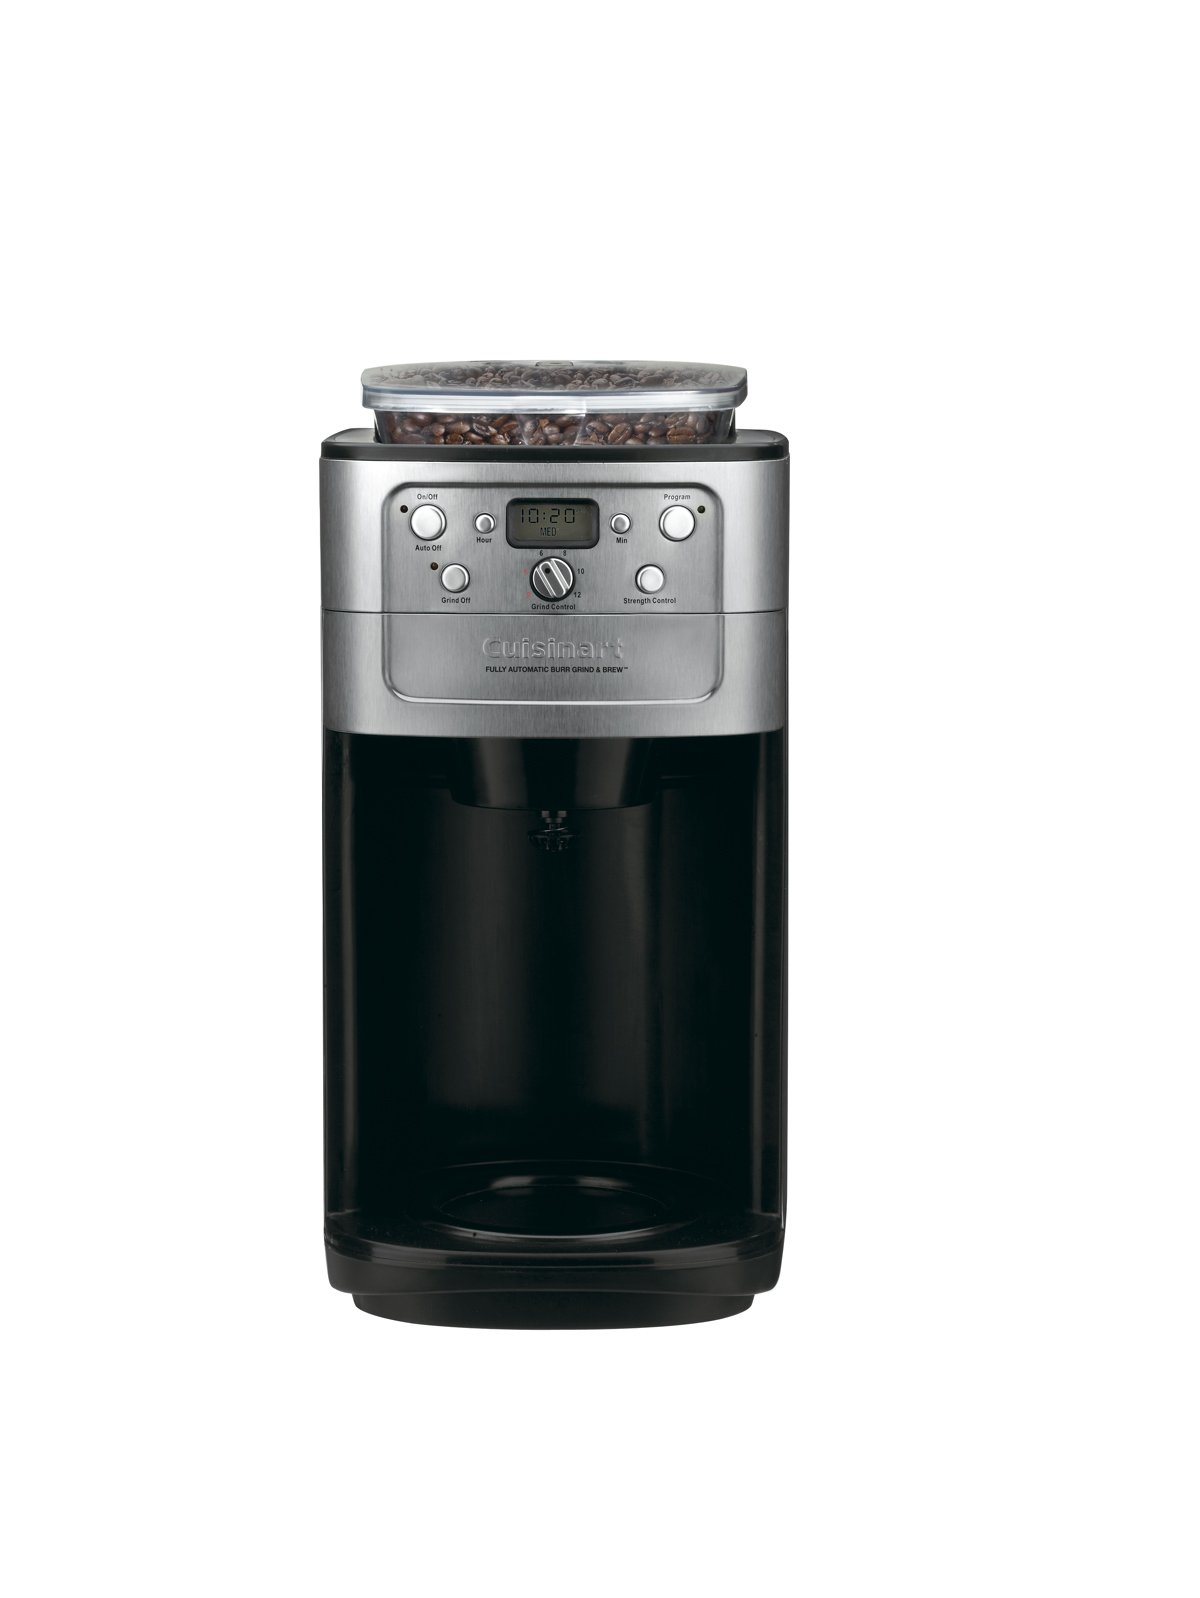 Conair Cuisinart Grind & Brew DGB-700BC 12 Cup Coffeemaker (Black/Brushed Chrome) by Cuisinart (Image #1)